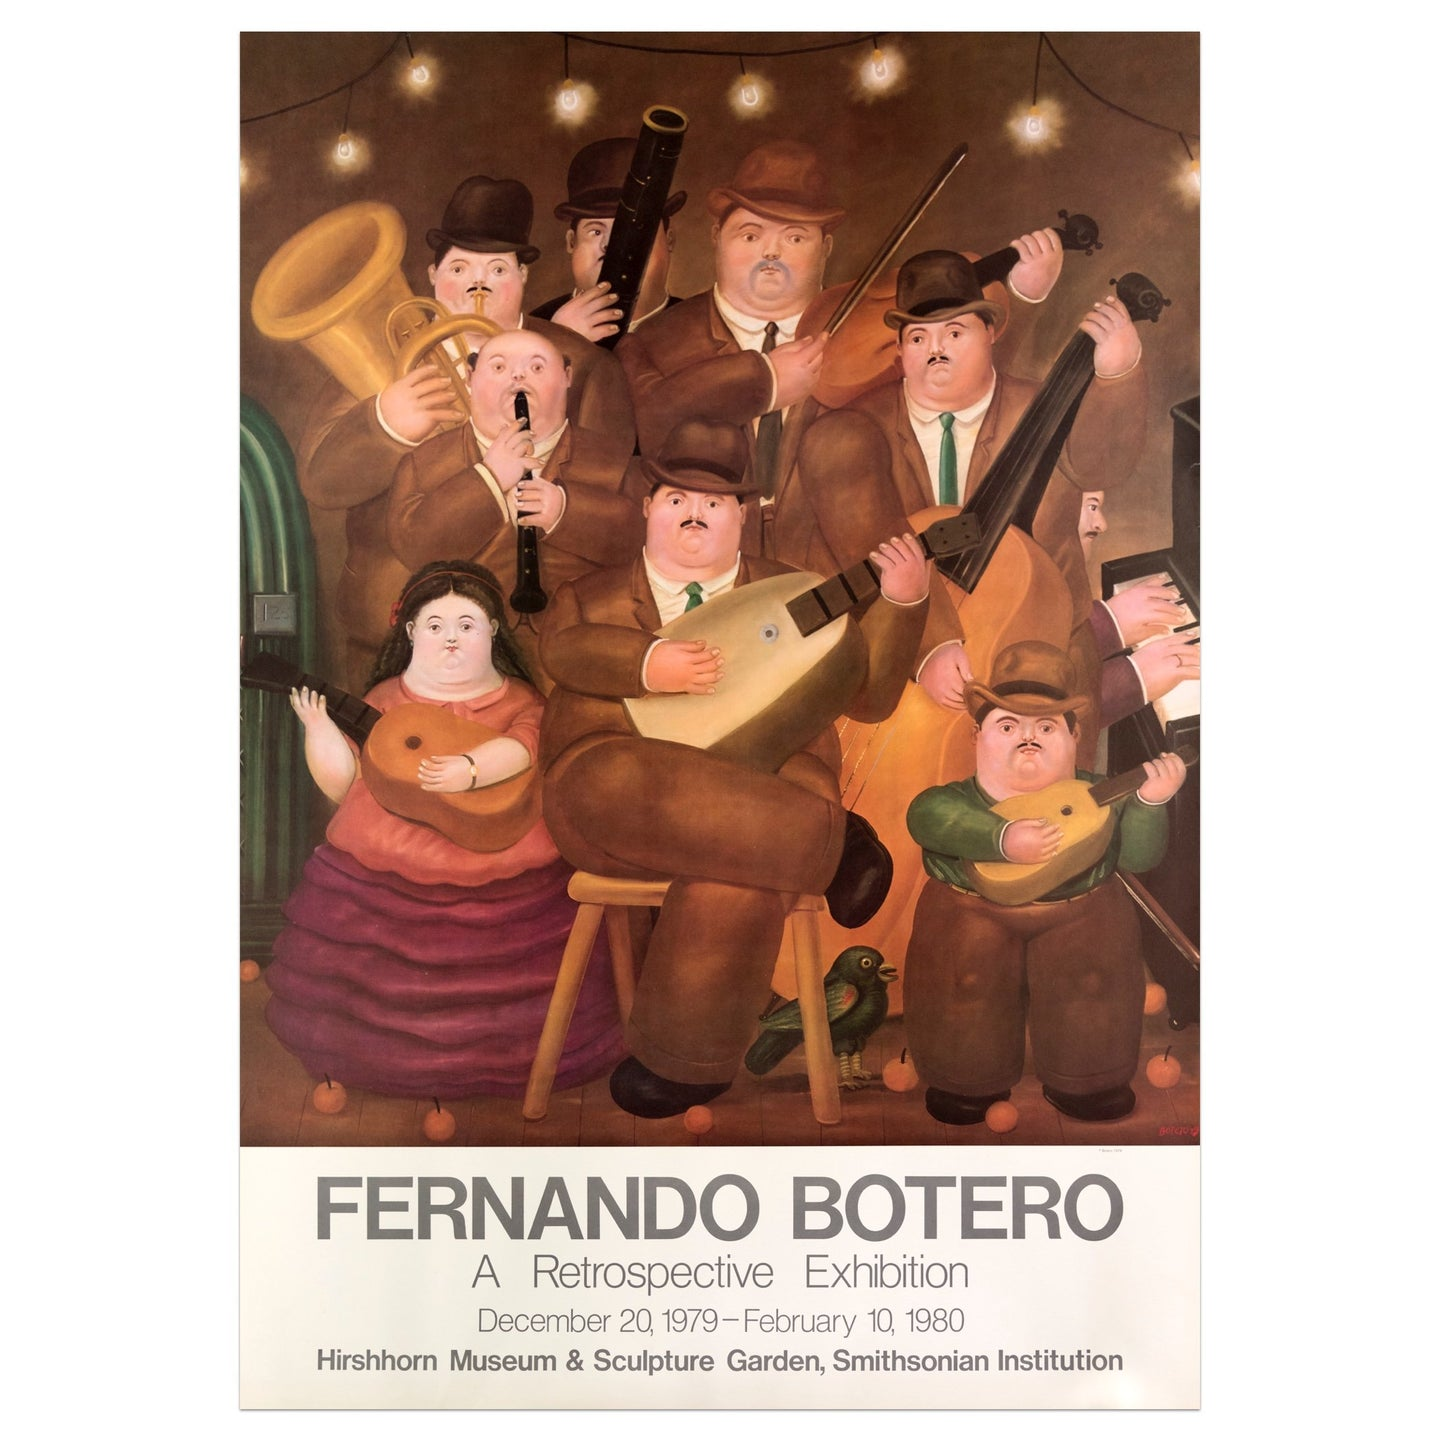 Smithsonian Institution poster for Fernando Botero of a 1980 retrospective exhibition featuring a band of 8 members holding their instruments